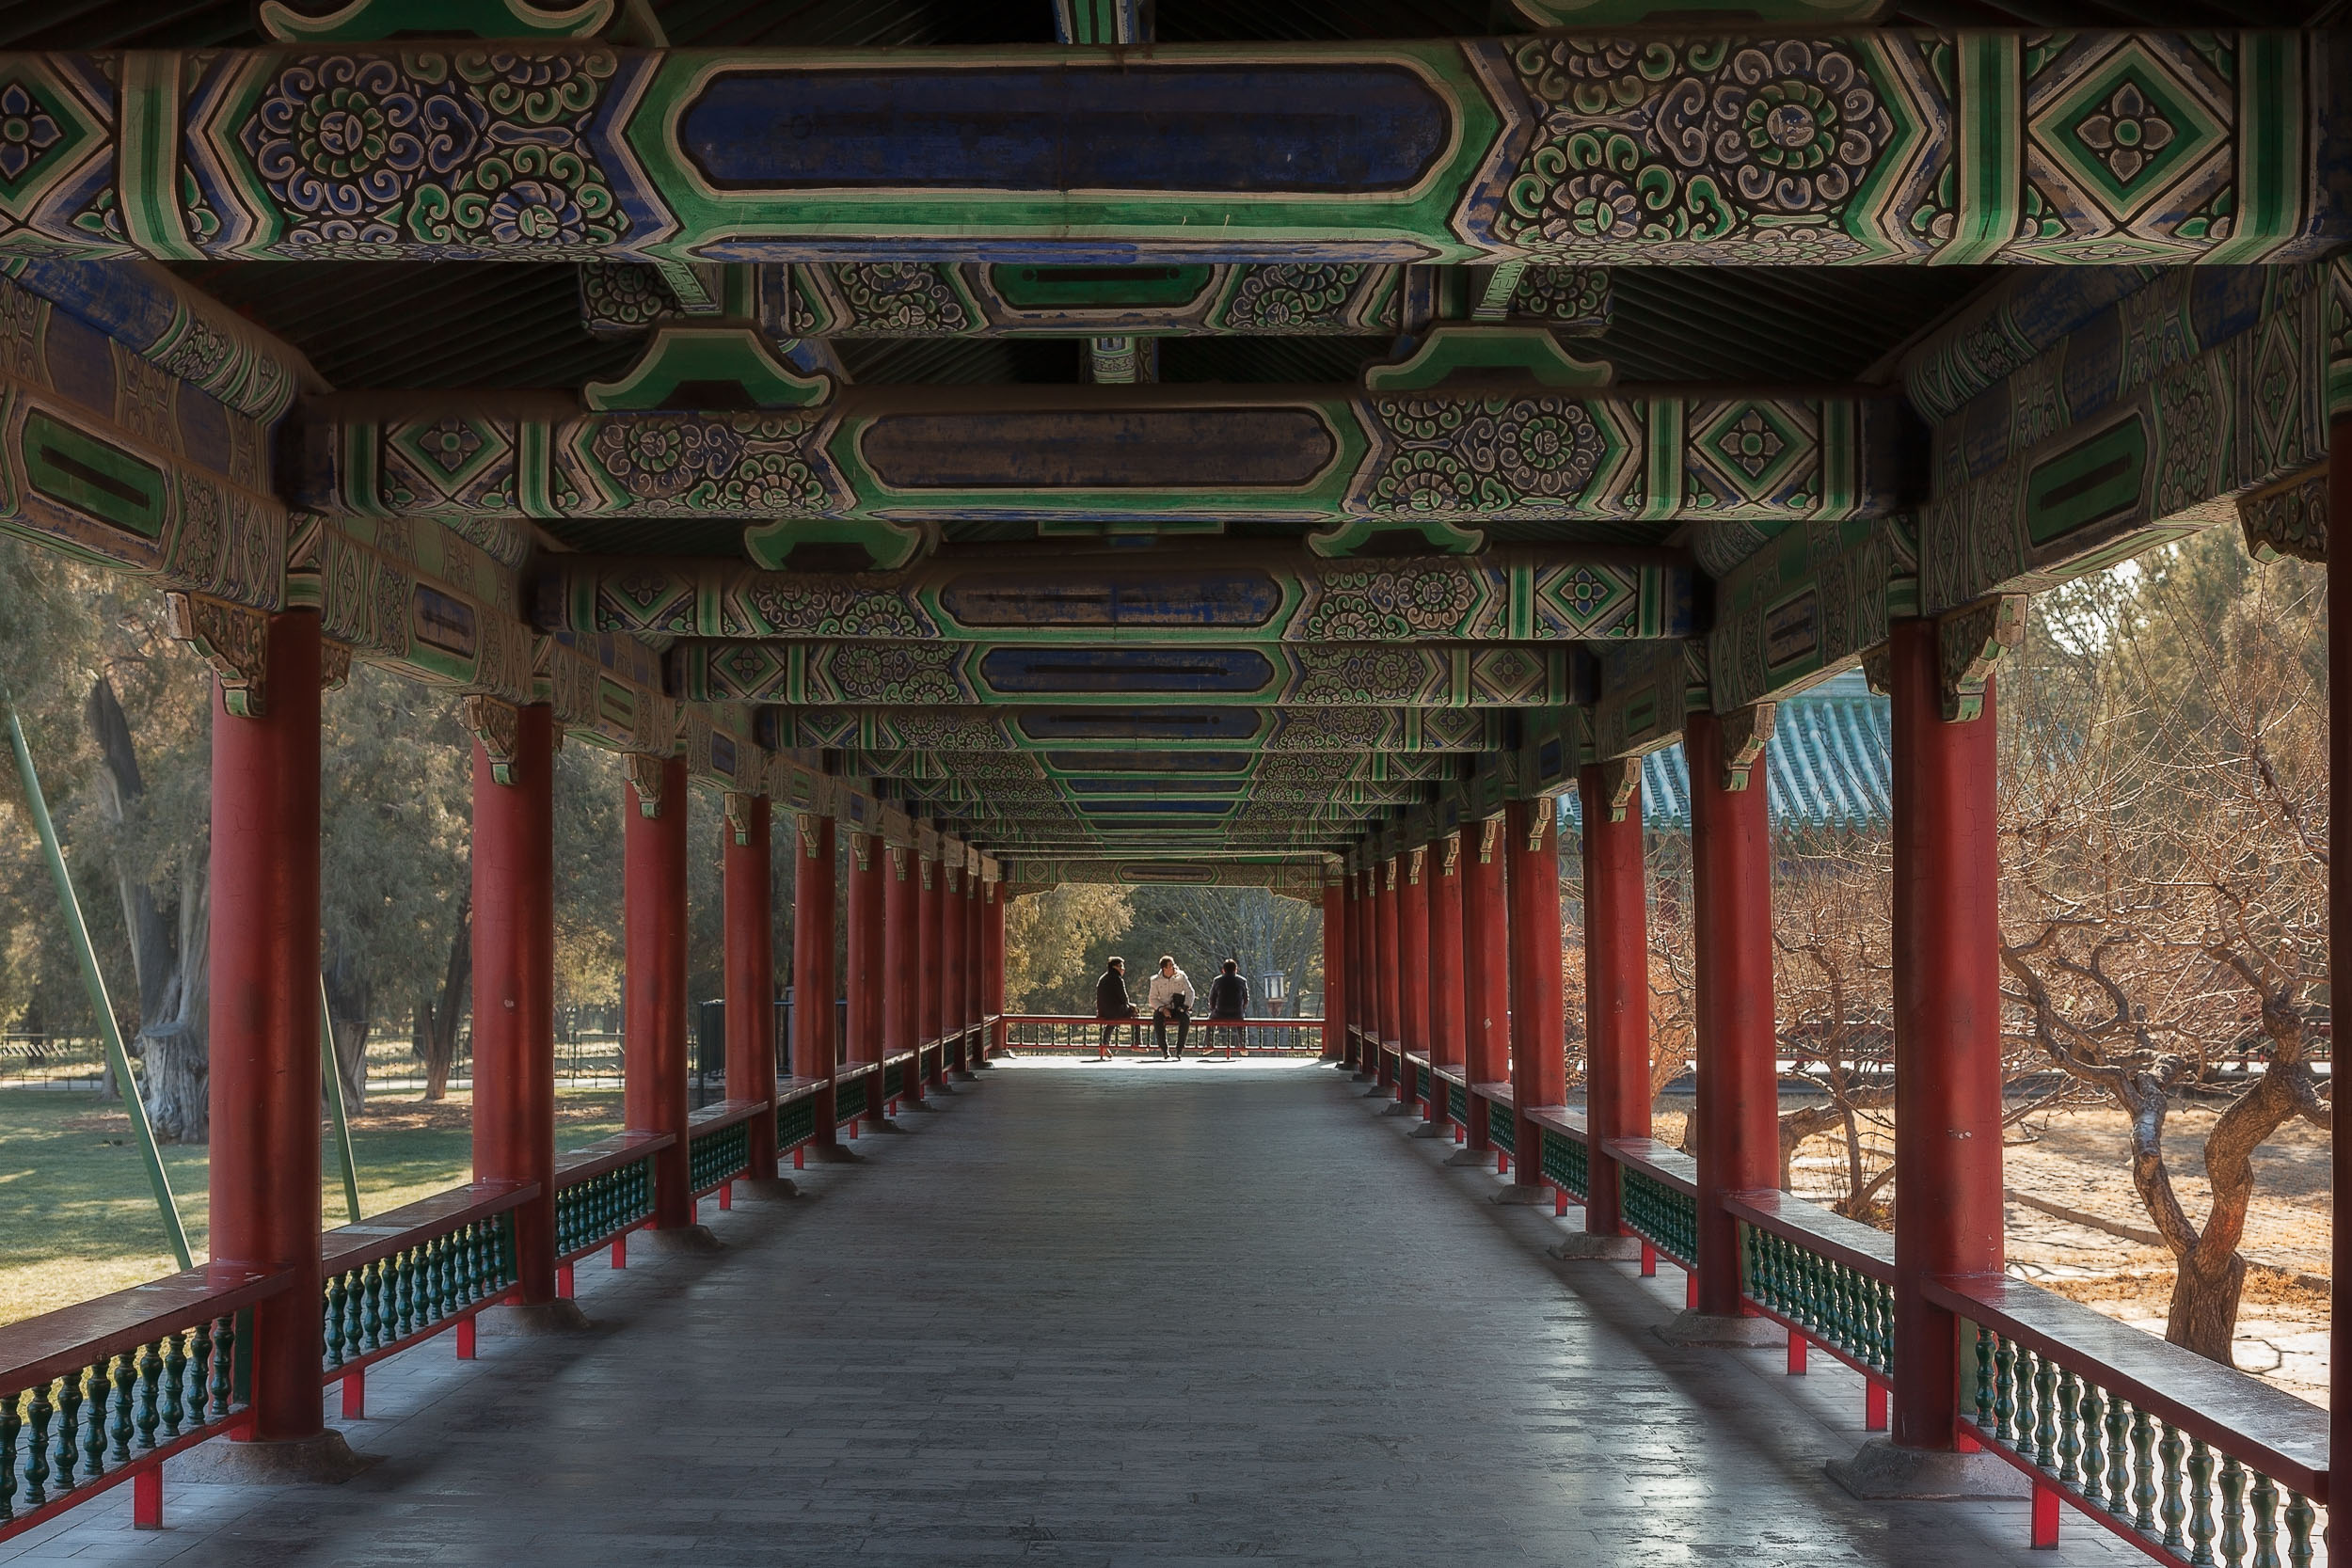 A peaceful view of  three men relaxing in the sunshine  at the end of a long verandah at the  Temple of Heaven  in  Beijing, China .